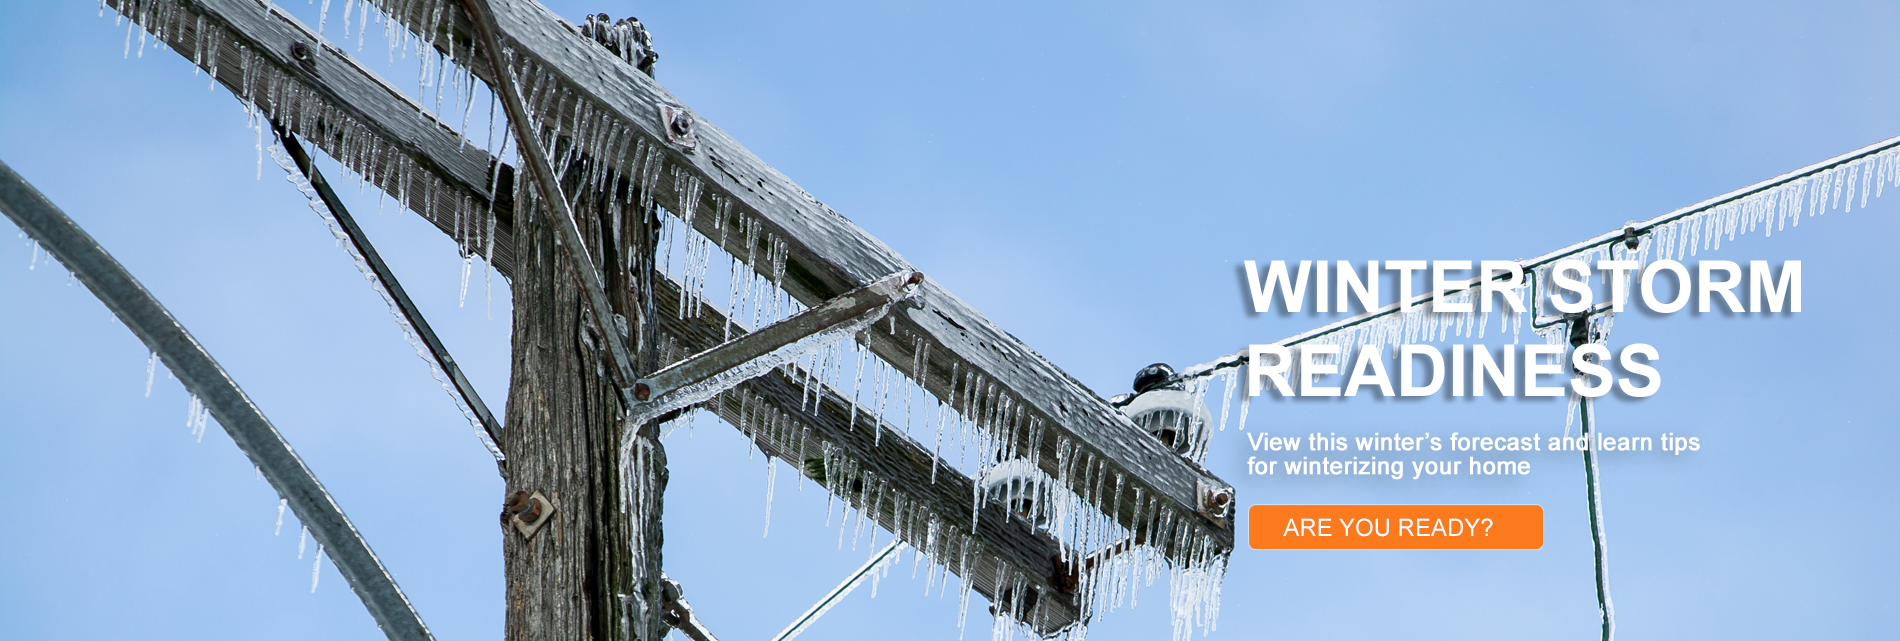 Winter Storm Readiness - View this winter's forecast and view tips for winterizing your home